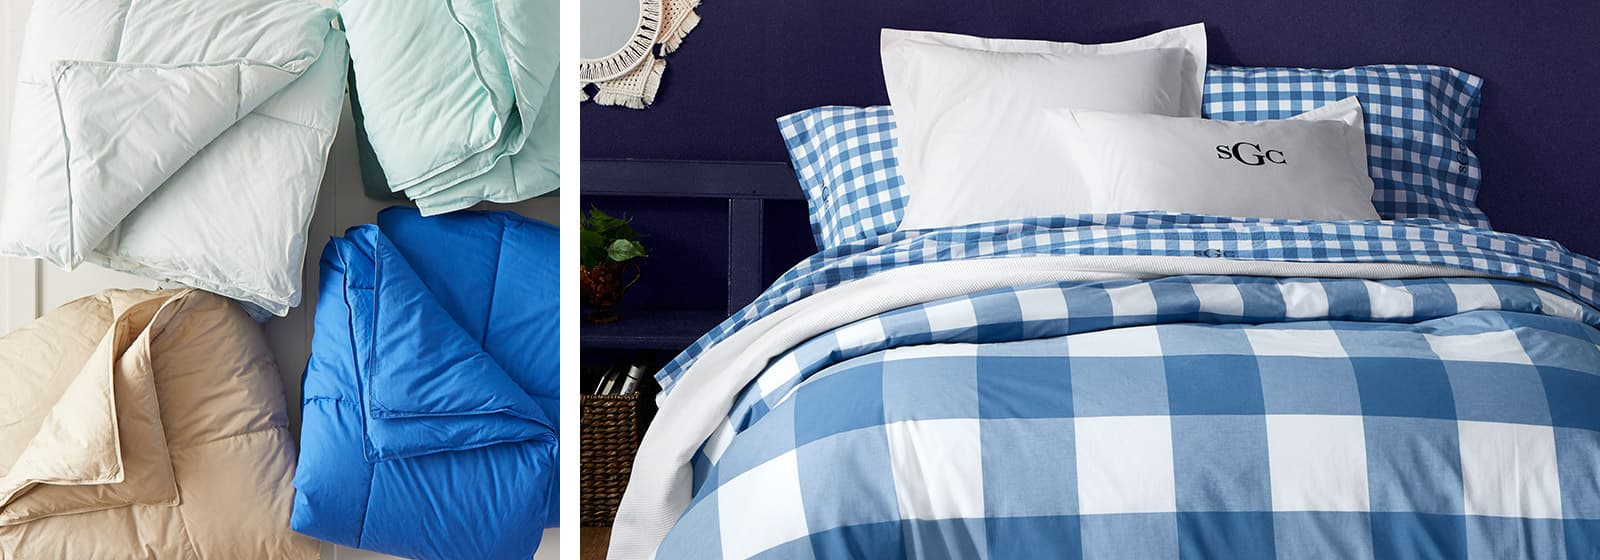 How to Pick The Best Monogram For Your Sheets